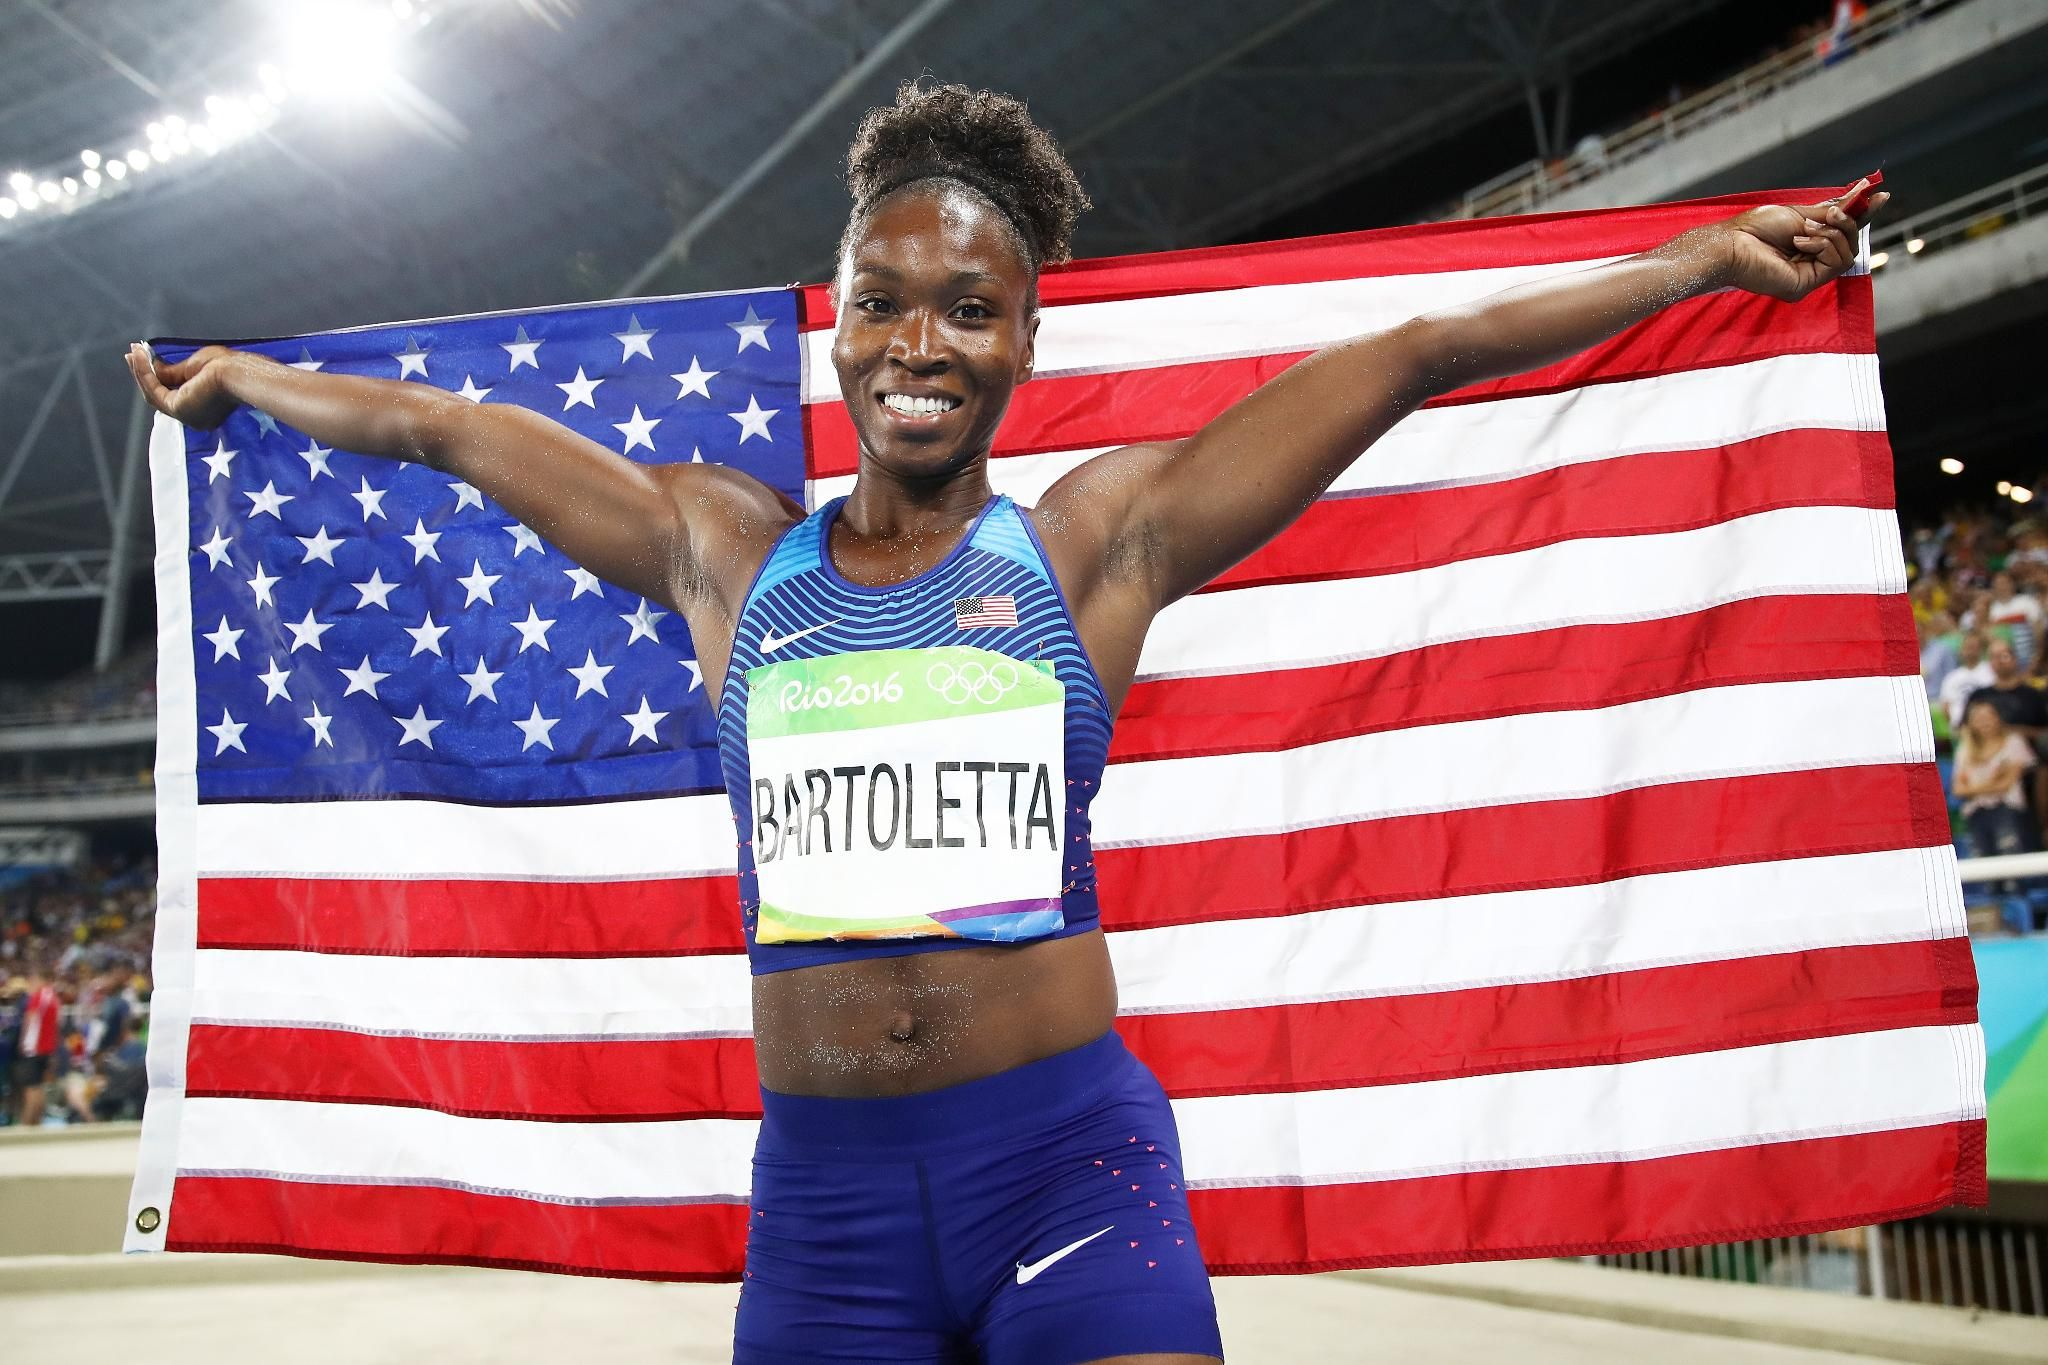 #Gold Tianna Bartoletta #USA > Womens Long Jump #Athletics #Rio2016  https://t.co/d4G4BClUwz